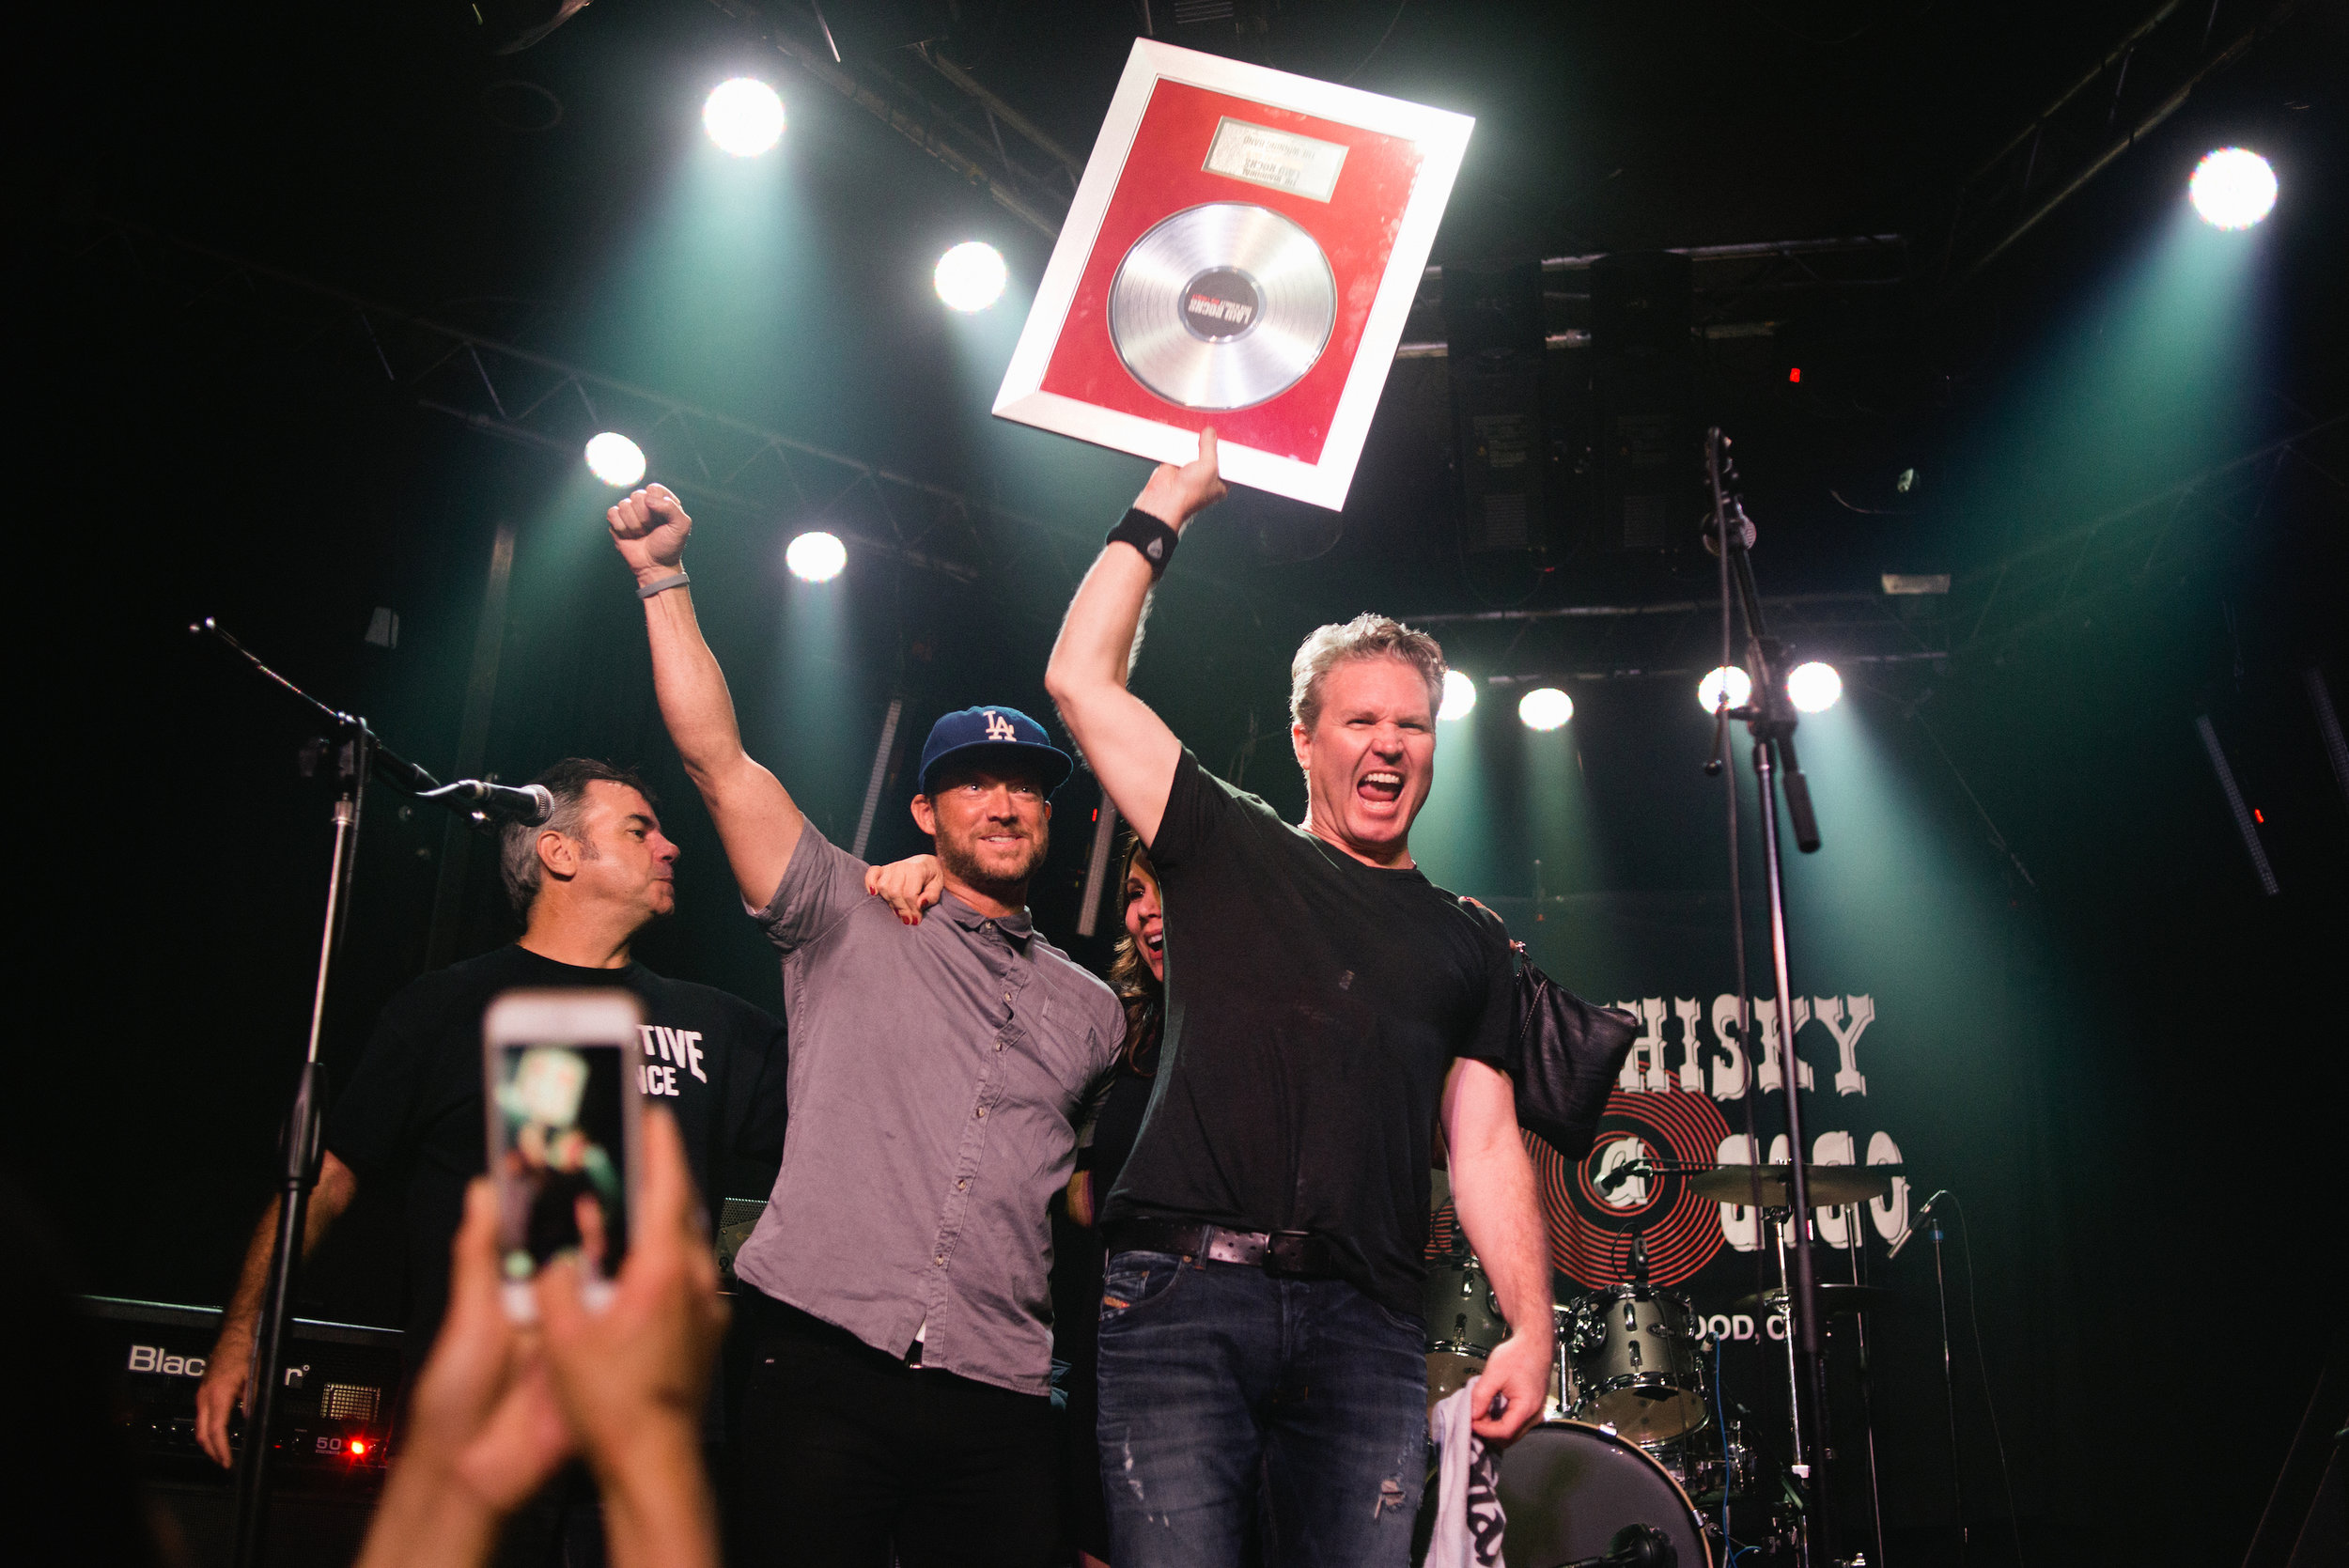 Saturday 25 March 2017, the Sixth Annual Law Rocks Los Angeles at the Whisky a Go Go